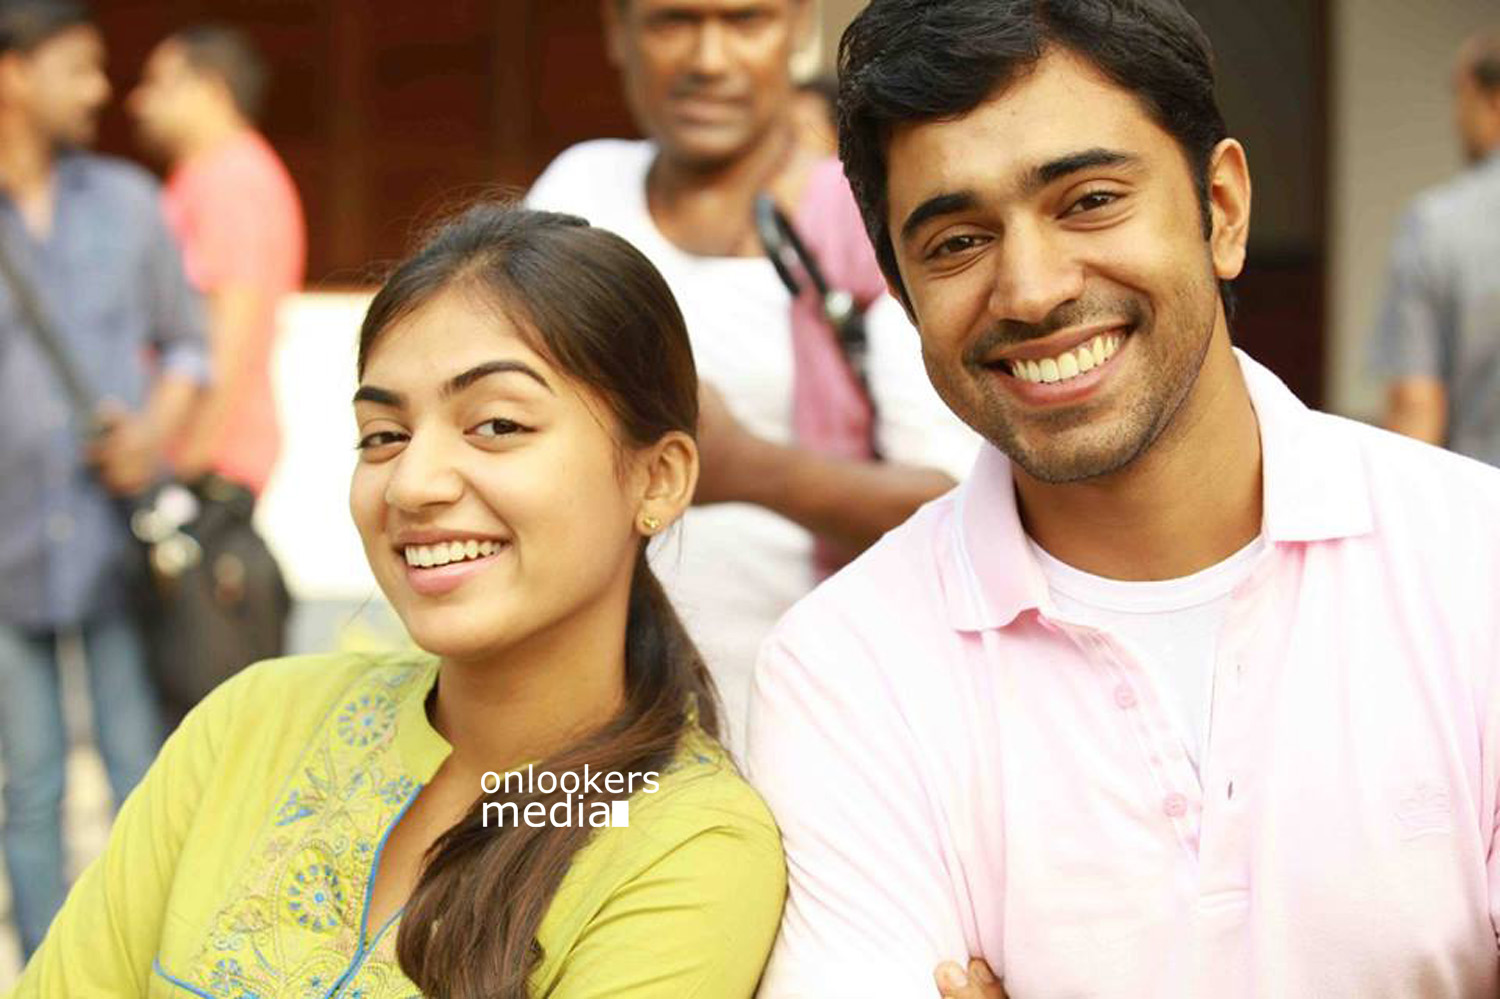 http://onlookersmedia.in/wp-content/uploads/2015/04/Nivin-Pauly-Stills-Images-Photos-Malayalam-Movie-2015-Onlookers-Media-19.jpg